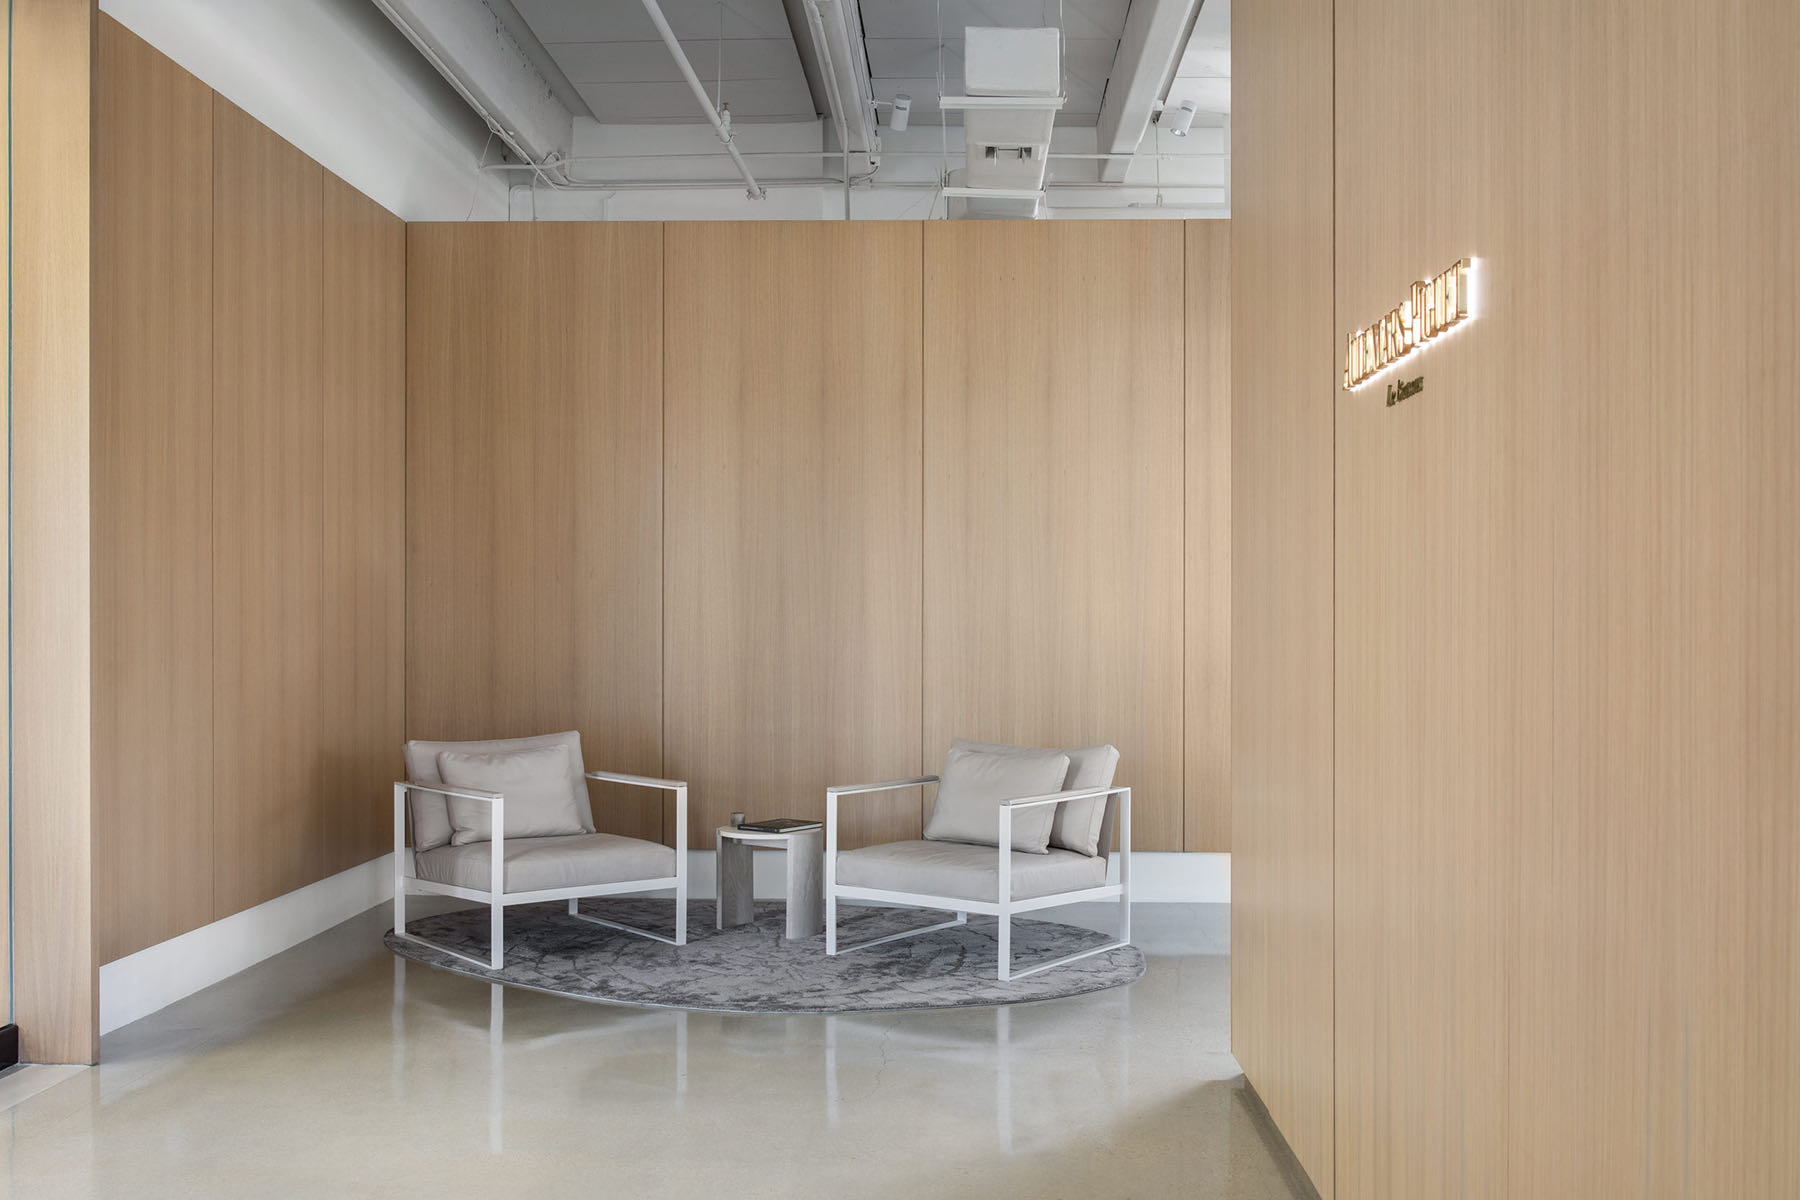 audemars-piguet-office-7